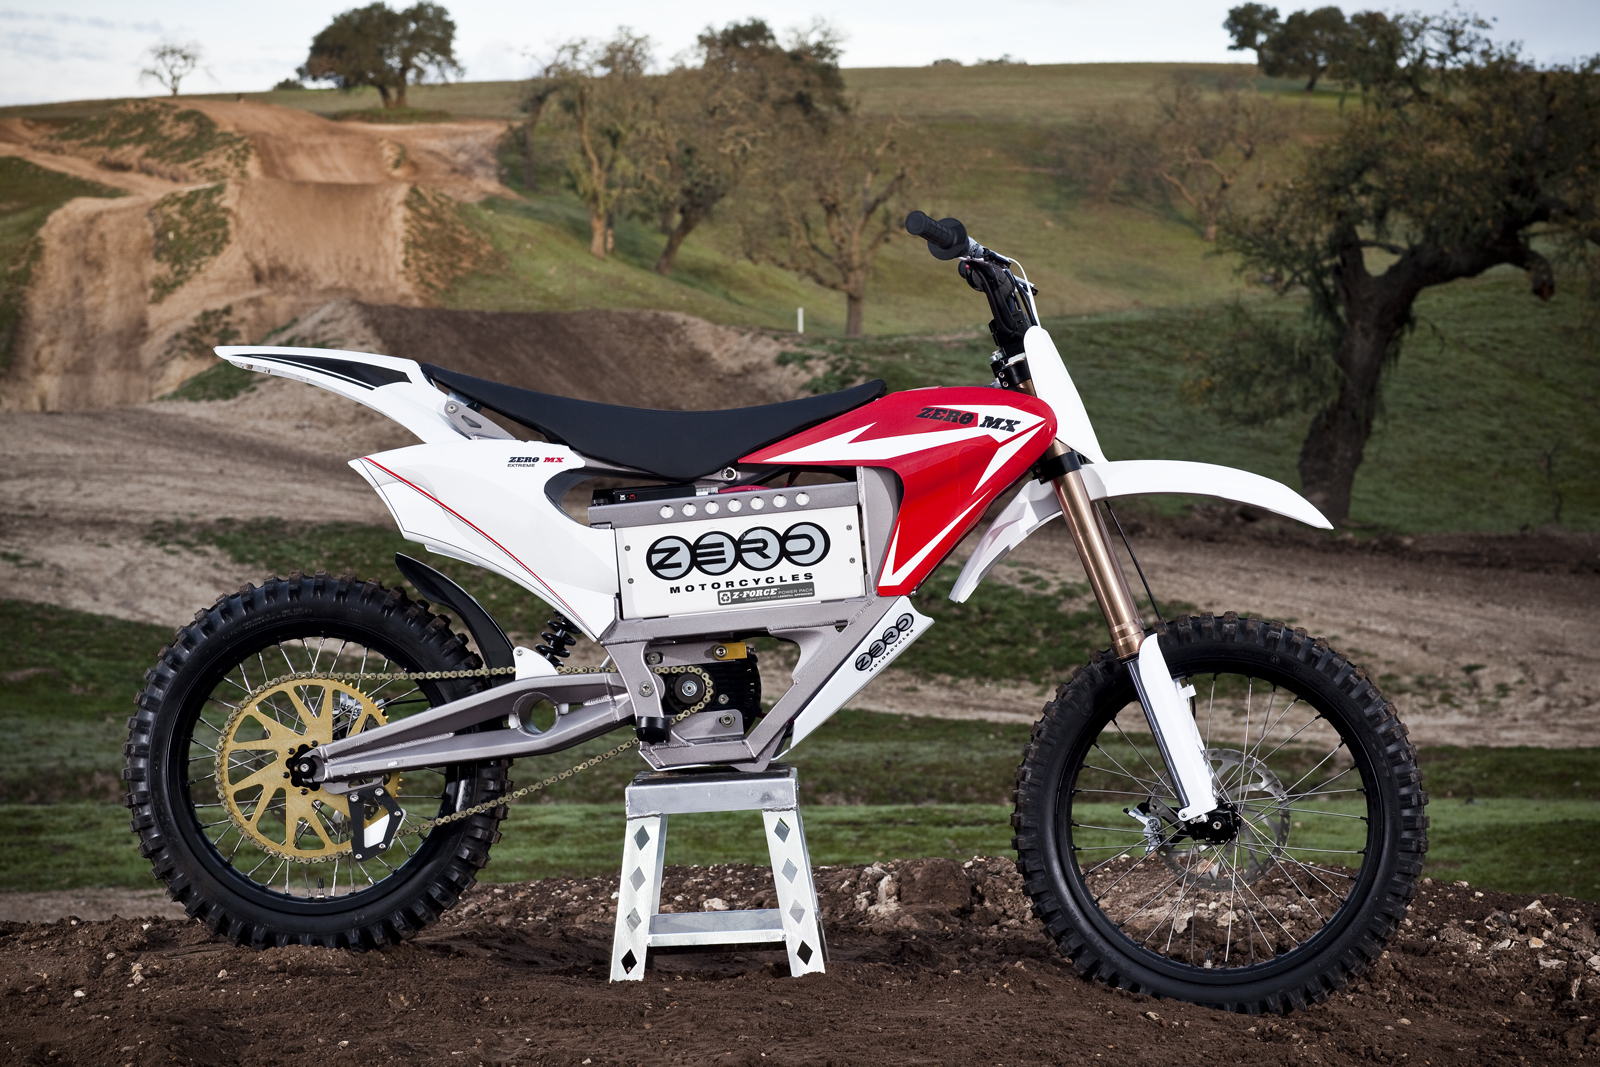 2010 Zero MX Electric Motorcycle: Zaca Station - Product Shot at Track